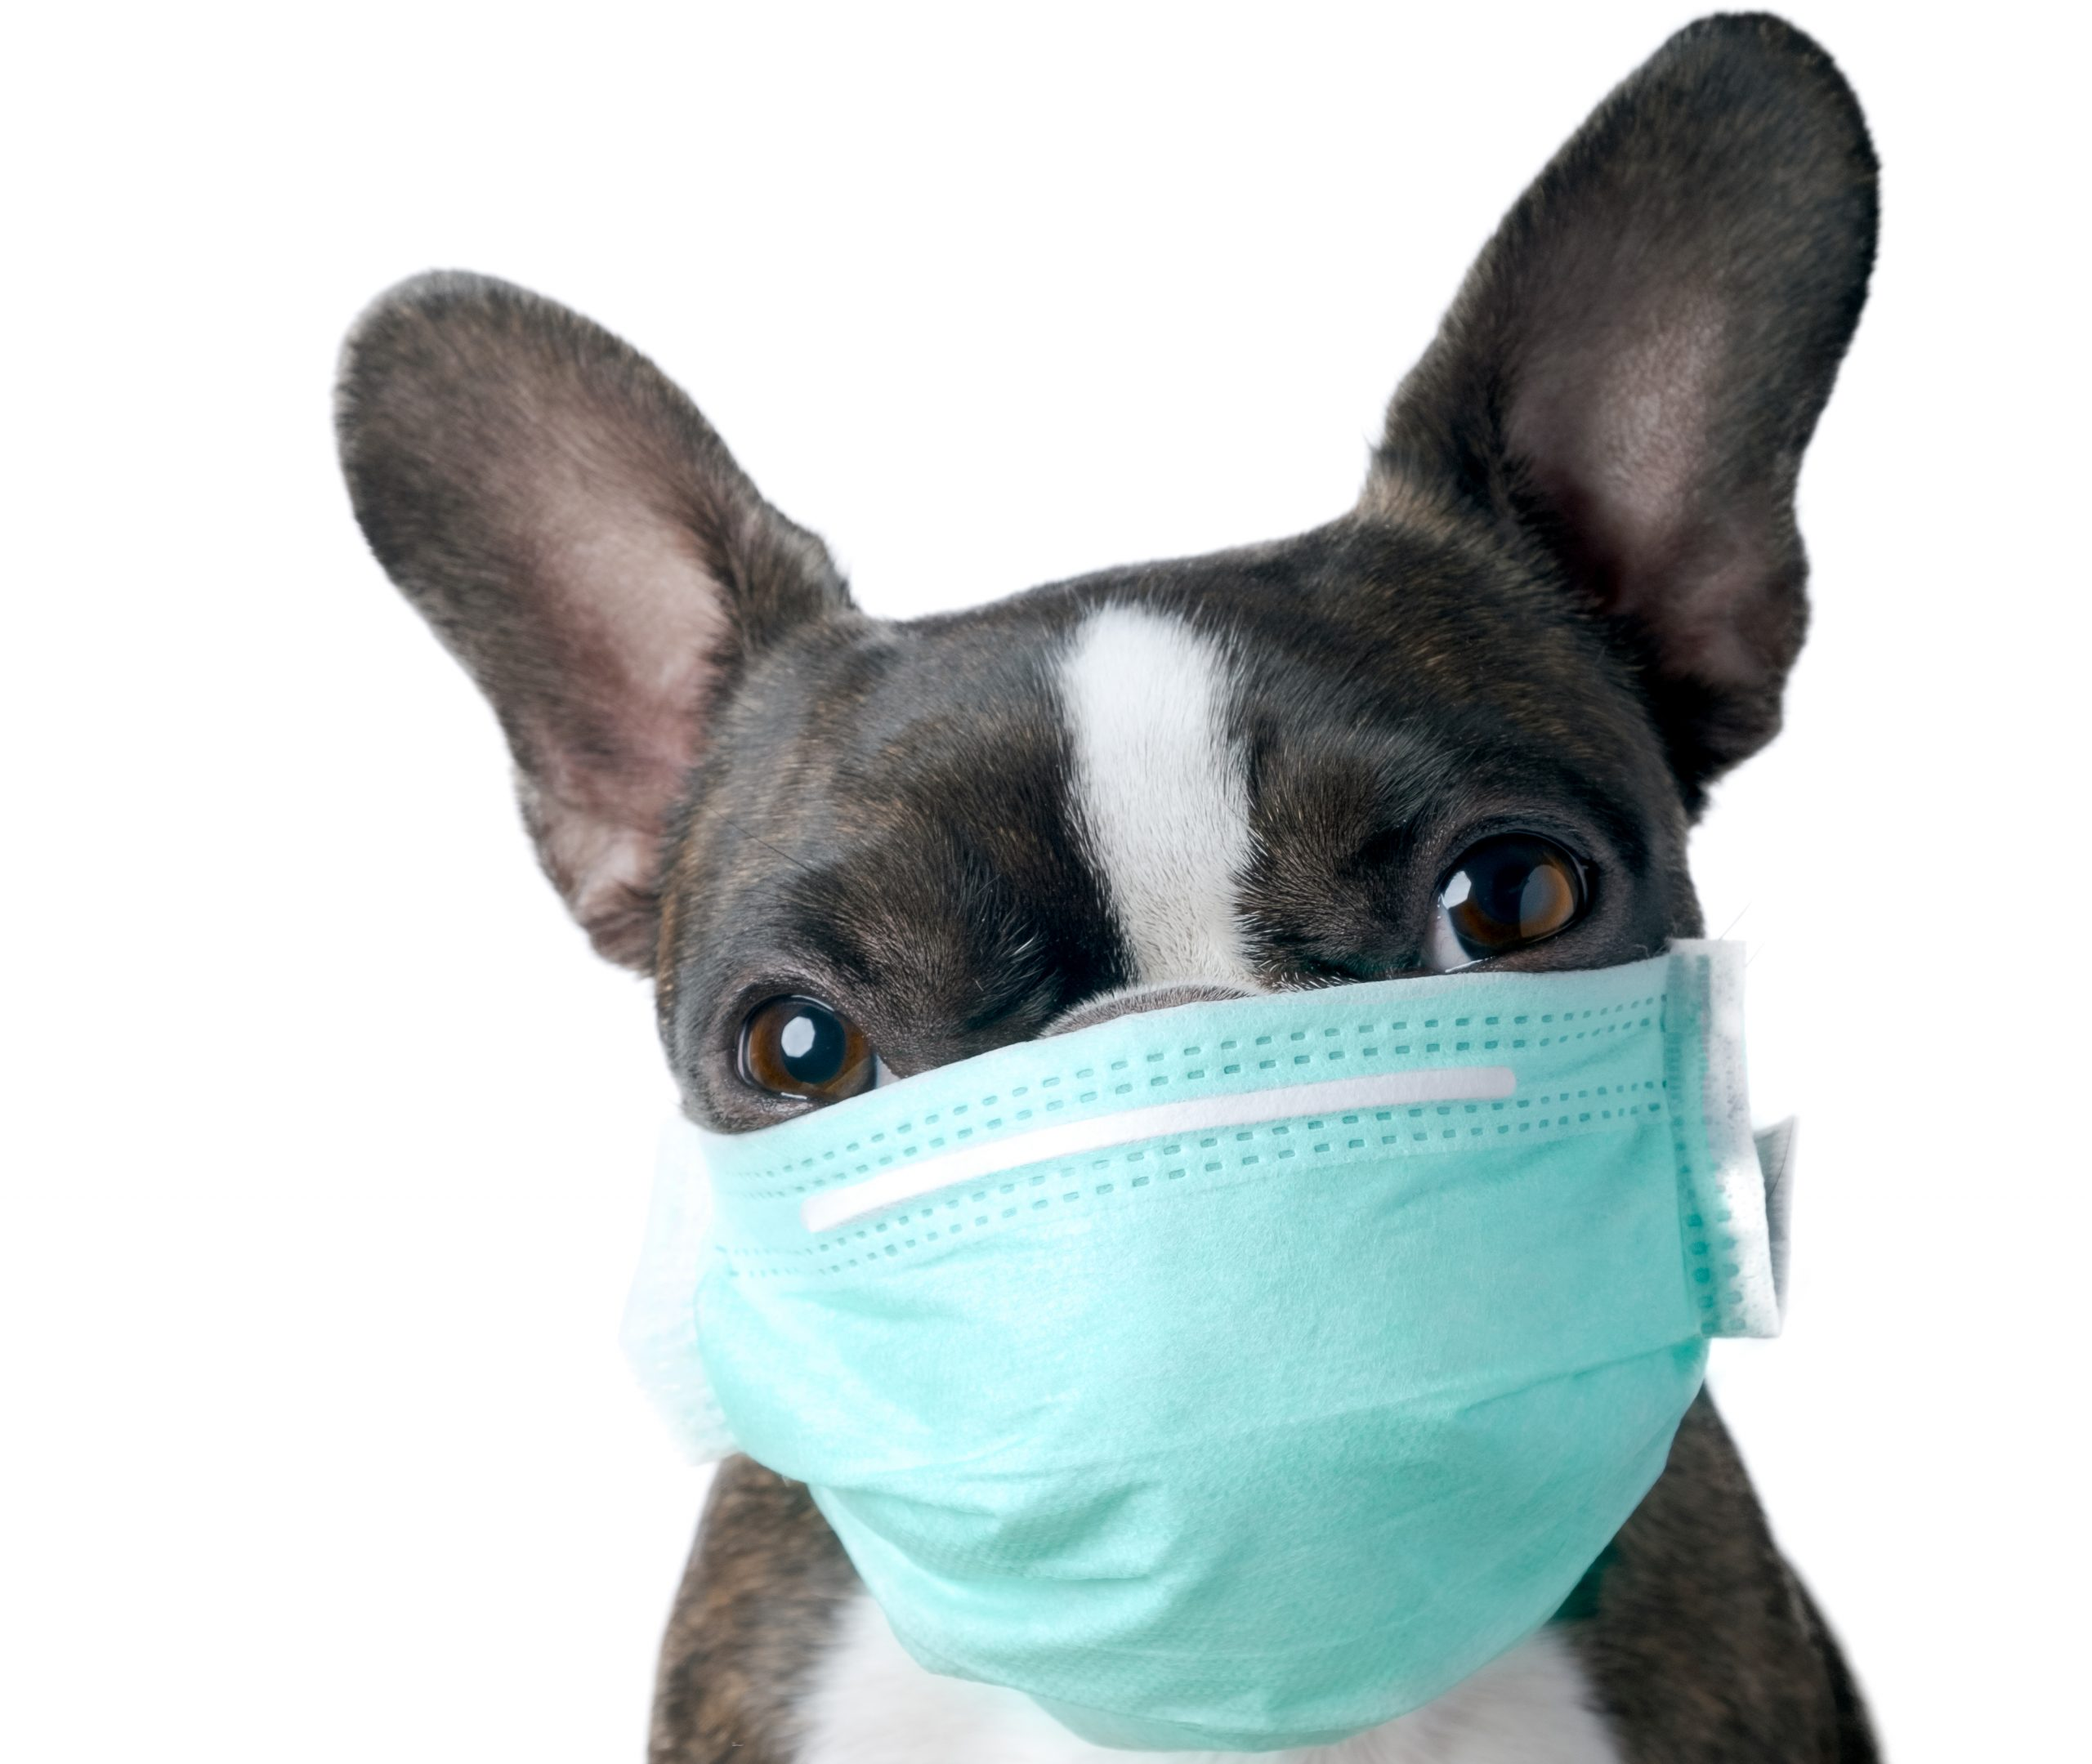 boston terrier wearing a green medical mask